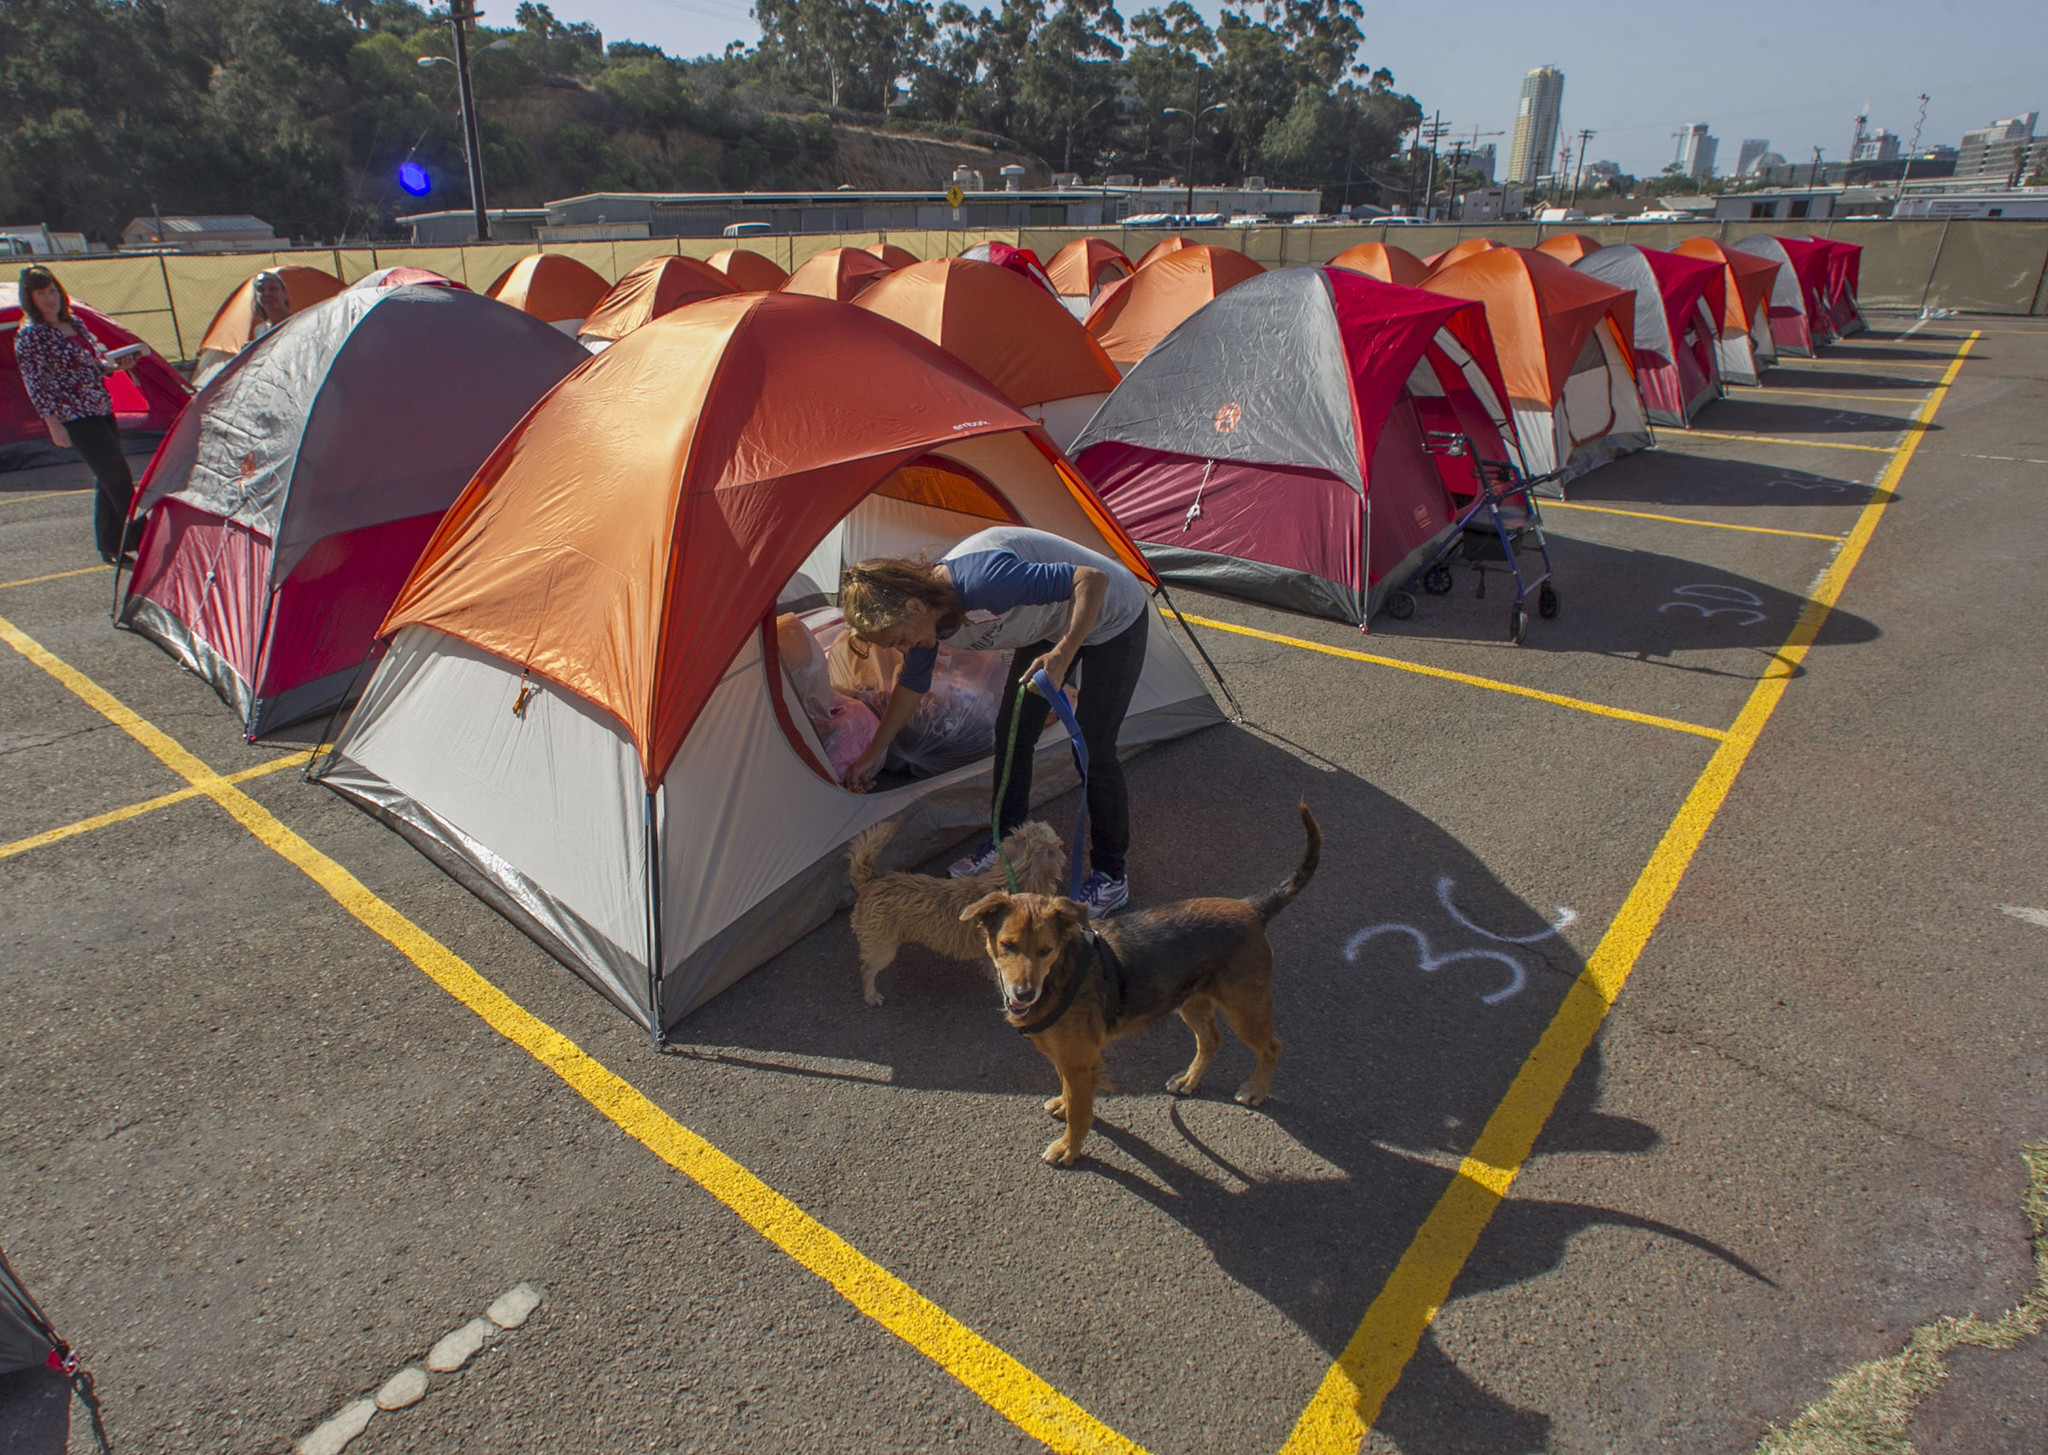 San Diego Launched Campground for The Homeless